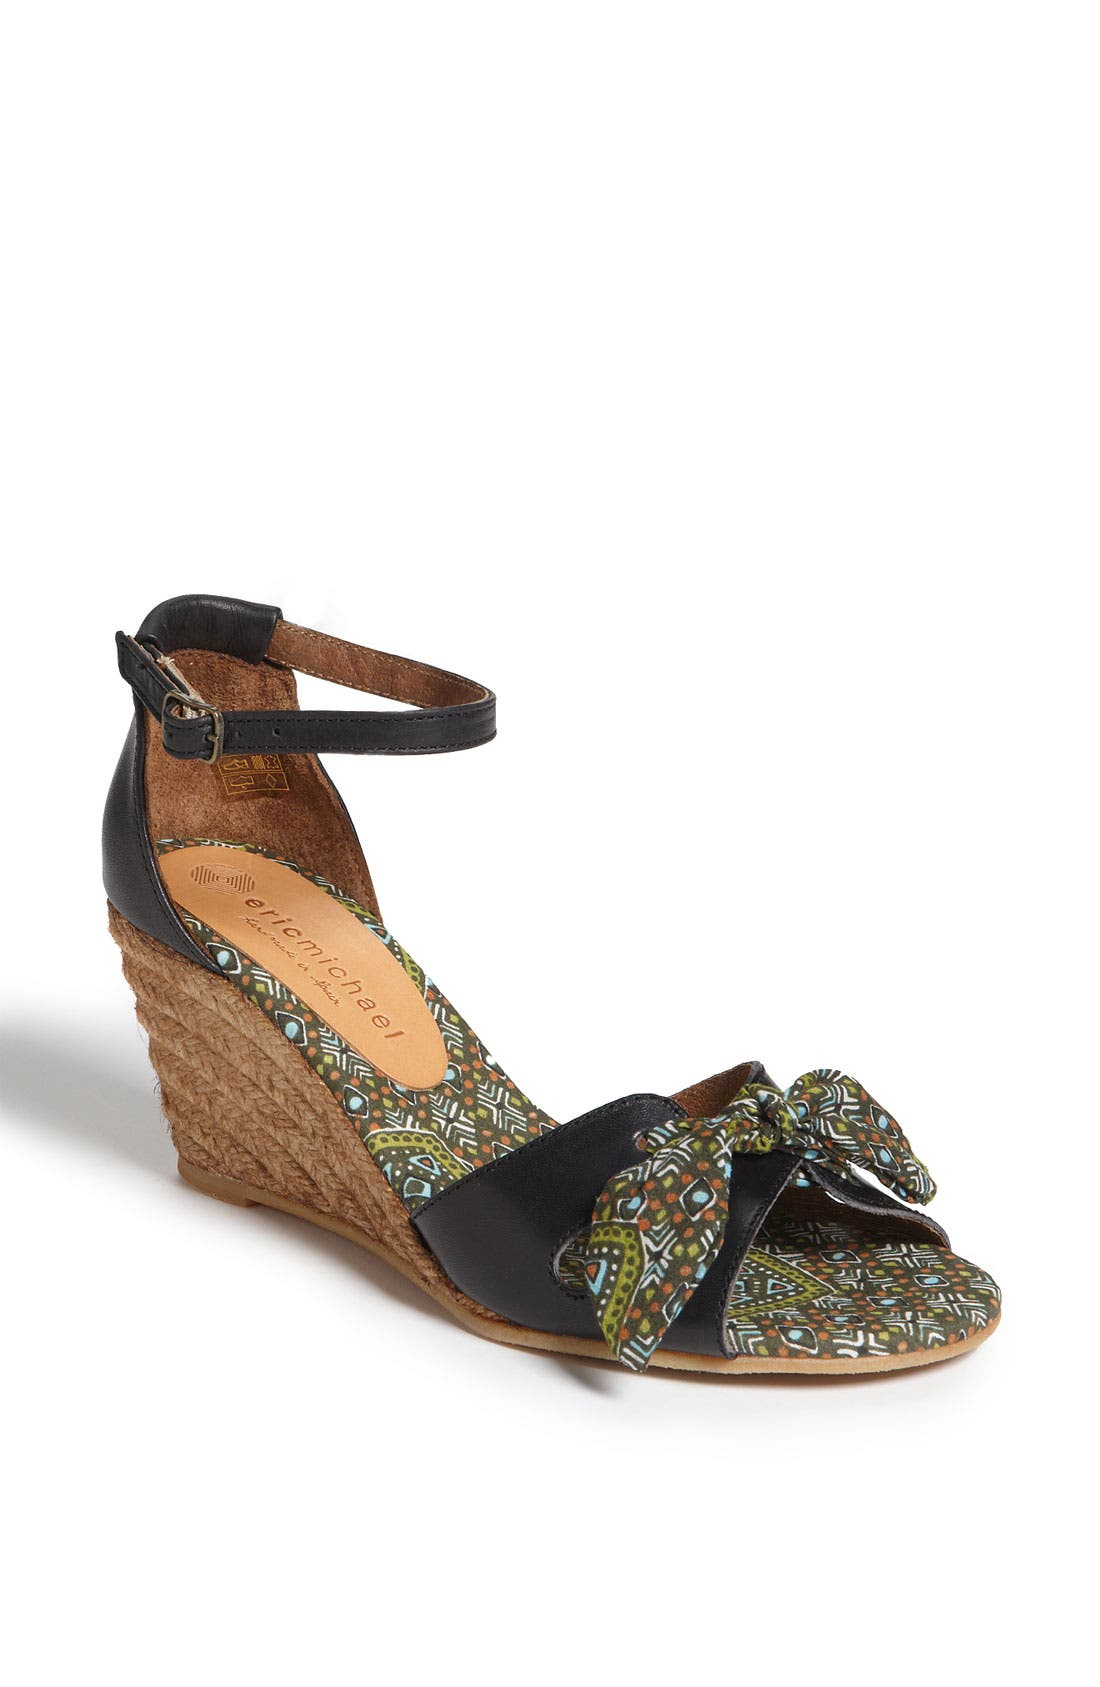 Main Image - Eric Michael 'Madison' Sandal